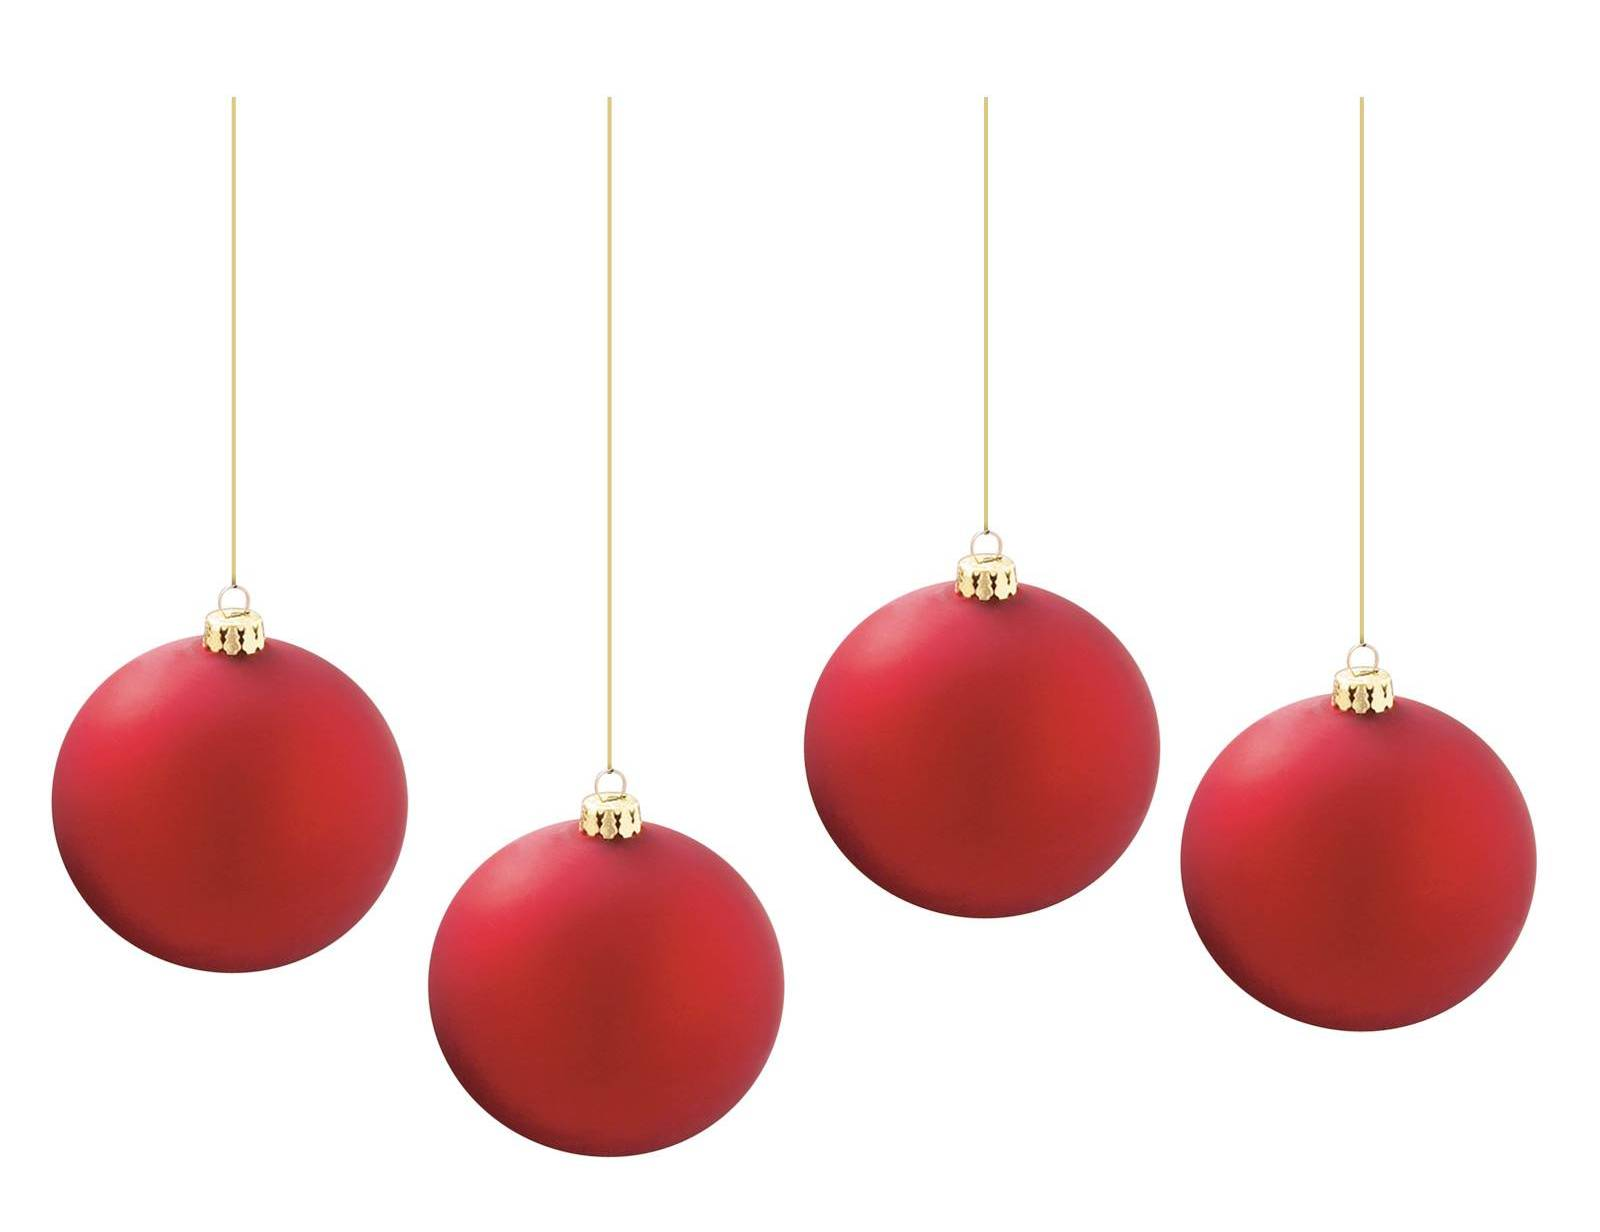 Christmas Ornament Png | Free download on ClipArtMag